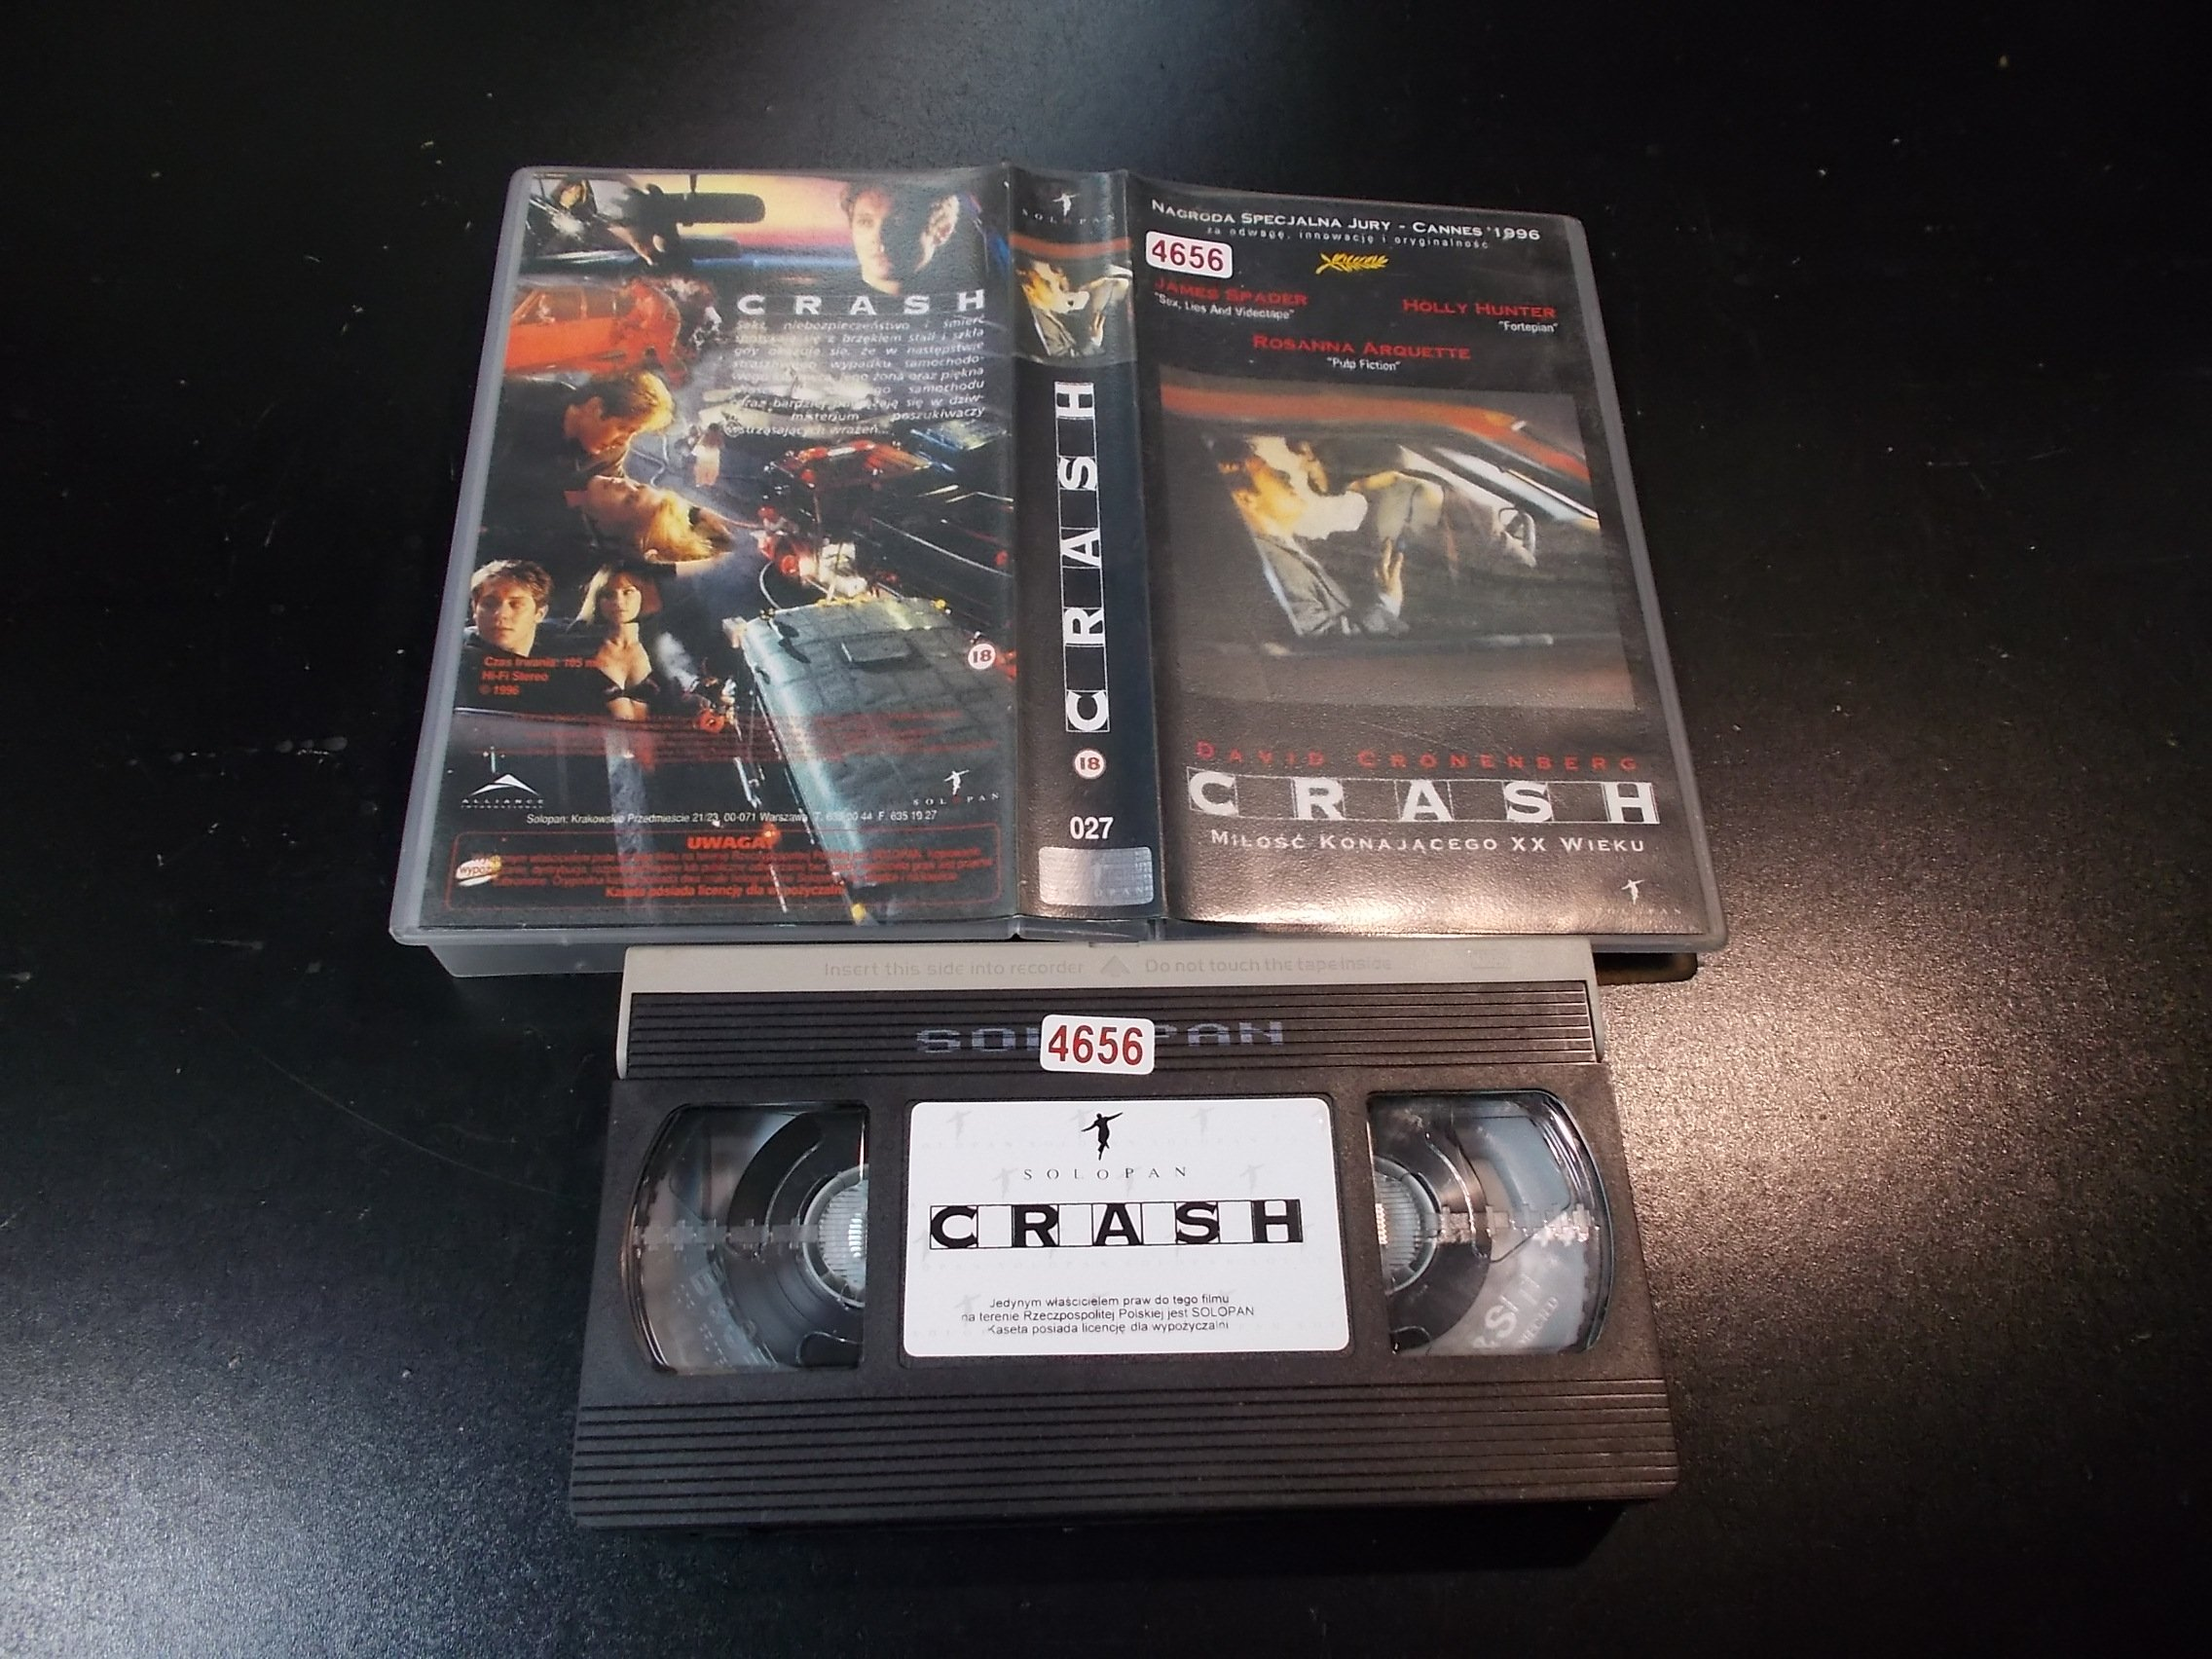 CRASH - kaseta Video VHS - 1363 Sklep